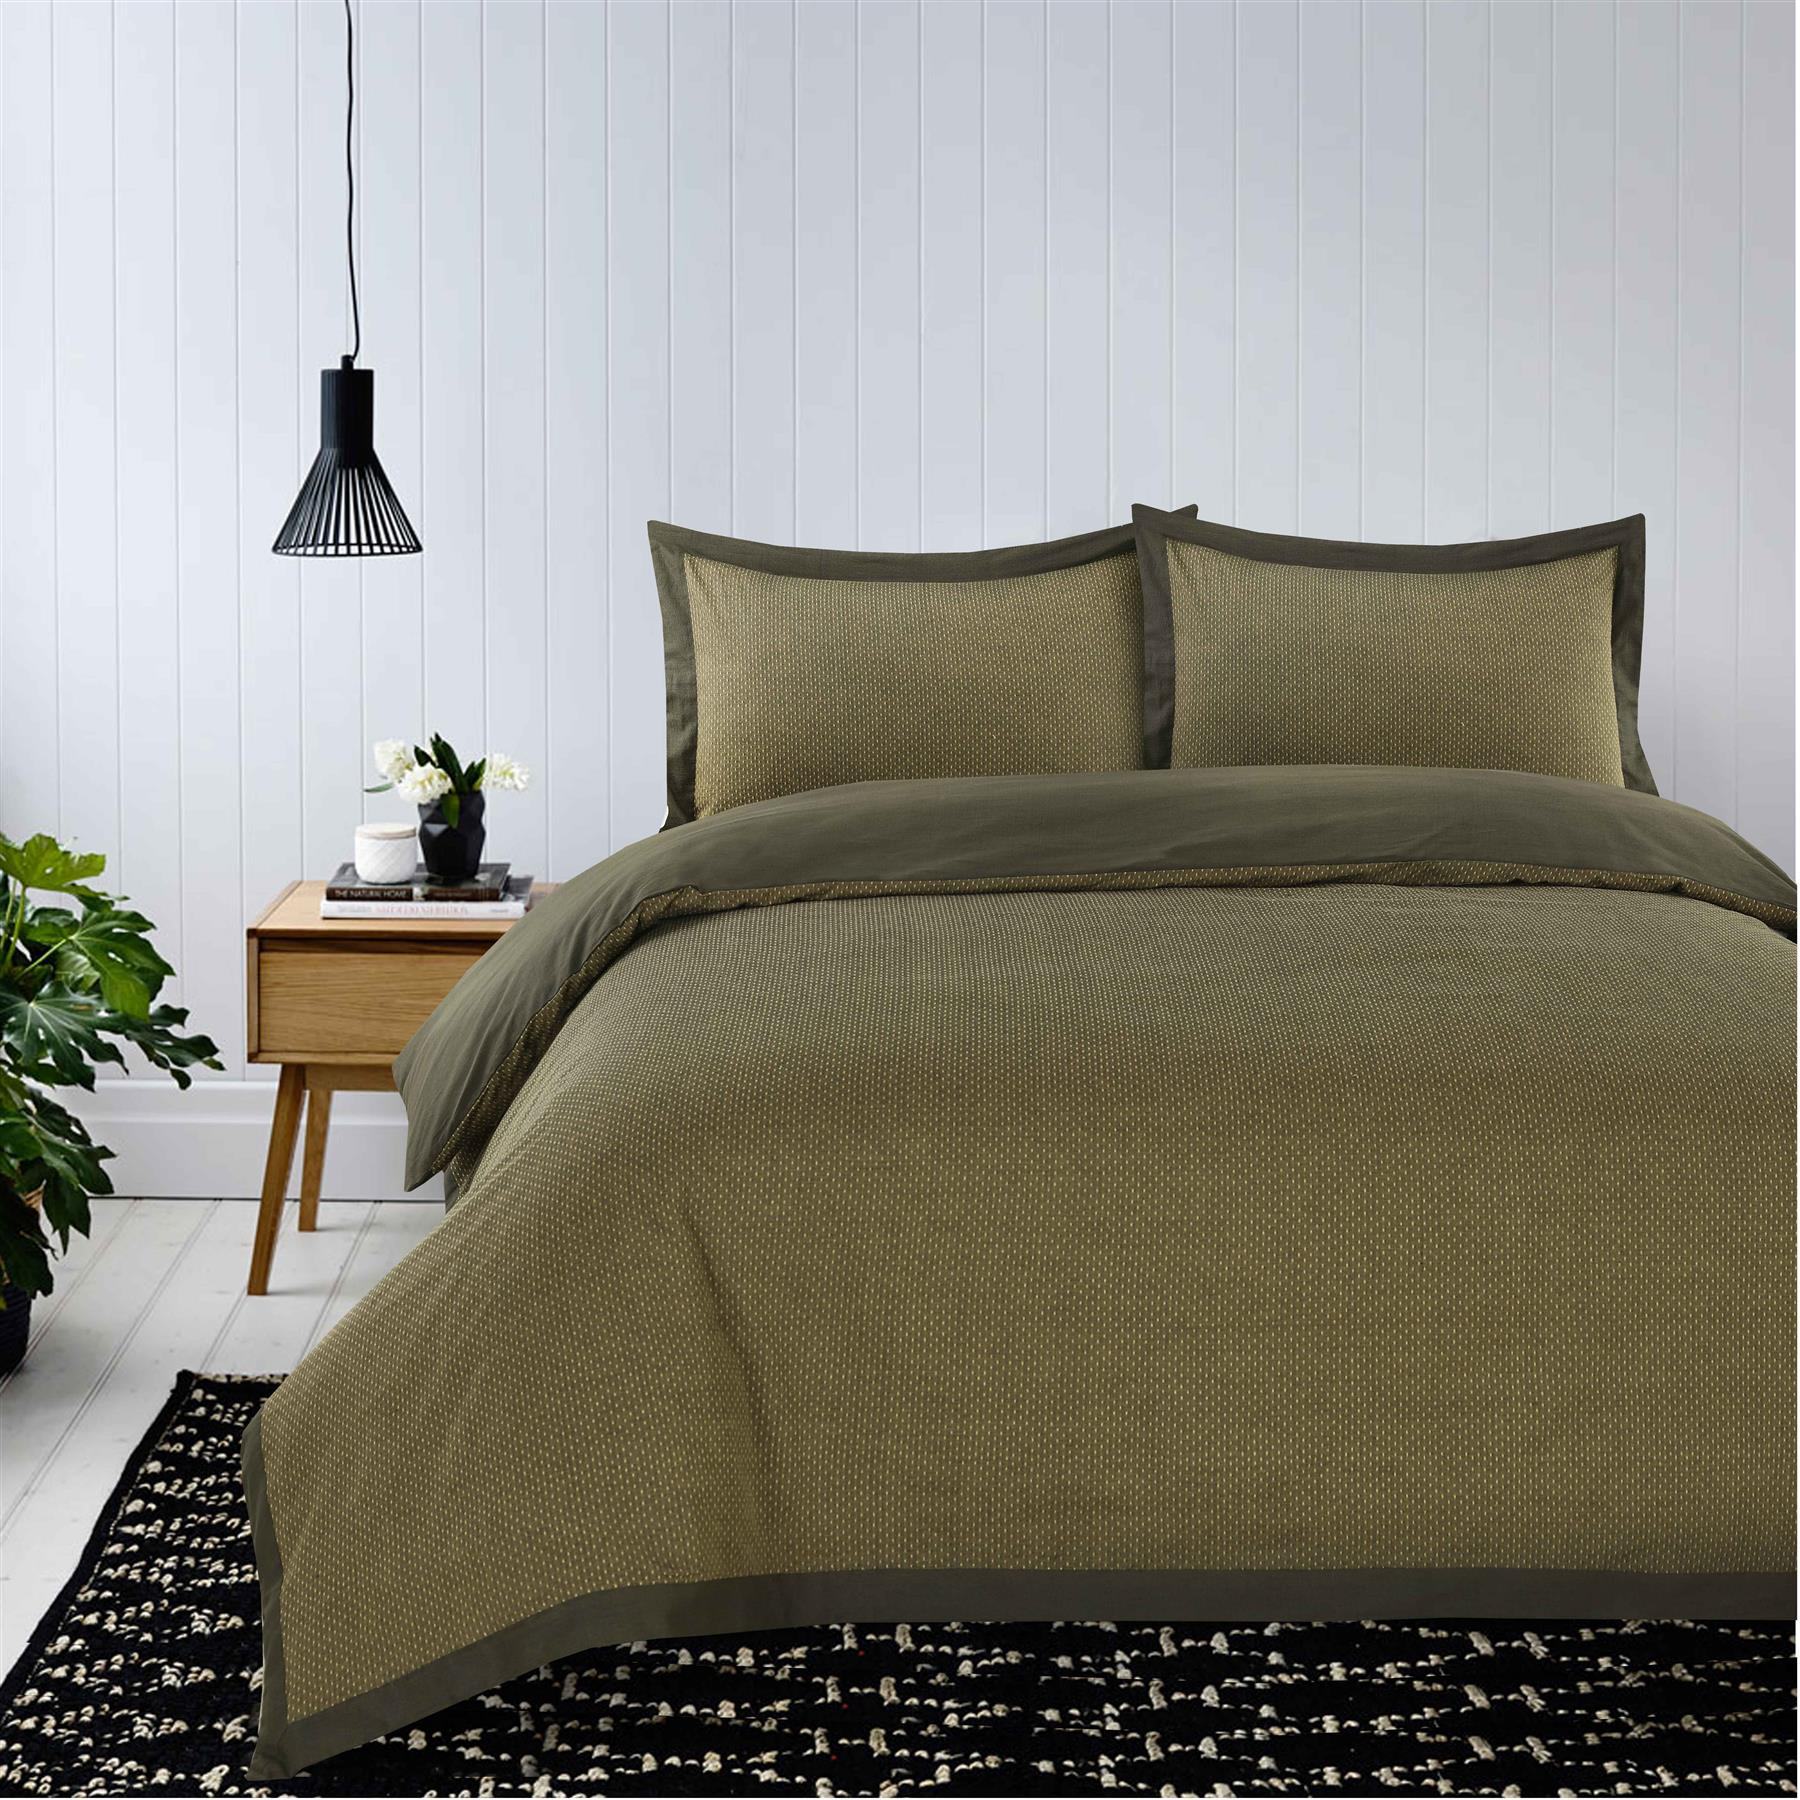 Luxury-Dobby-Dots-Dotted-100-Cotton-Duvet-Cover-Bedding-Set-Single-Double-King thumbnail 9